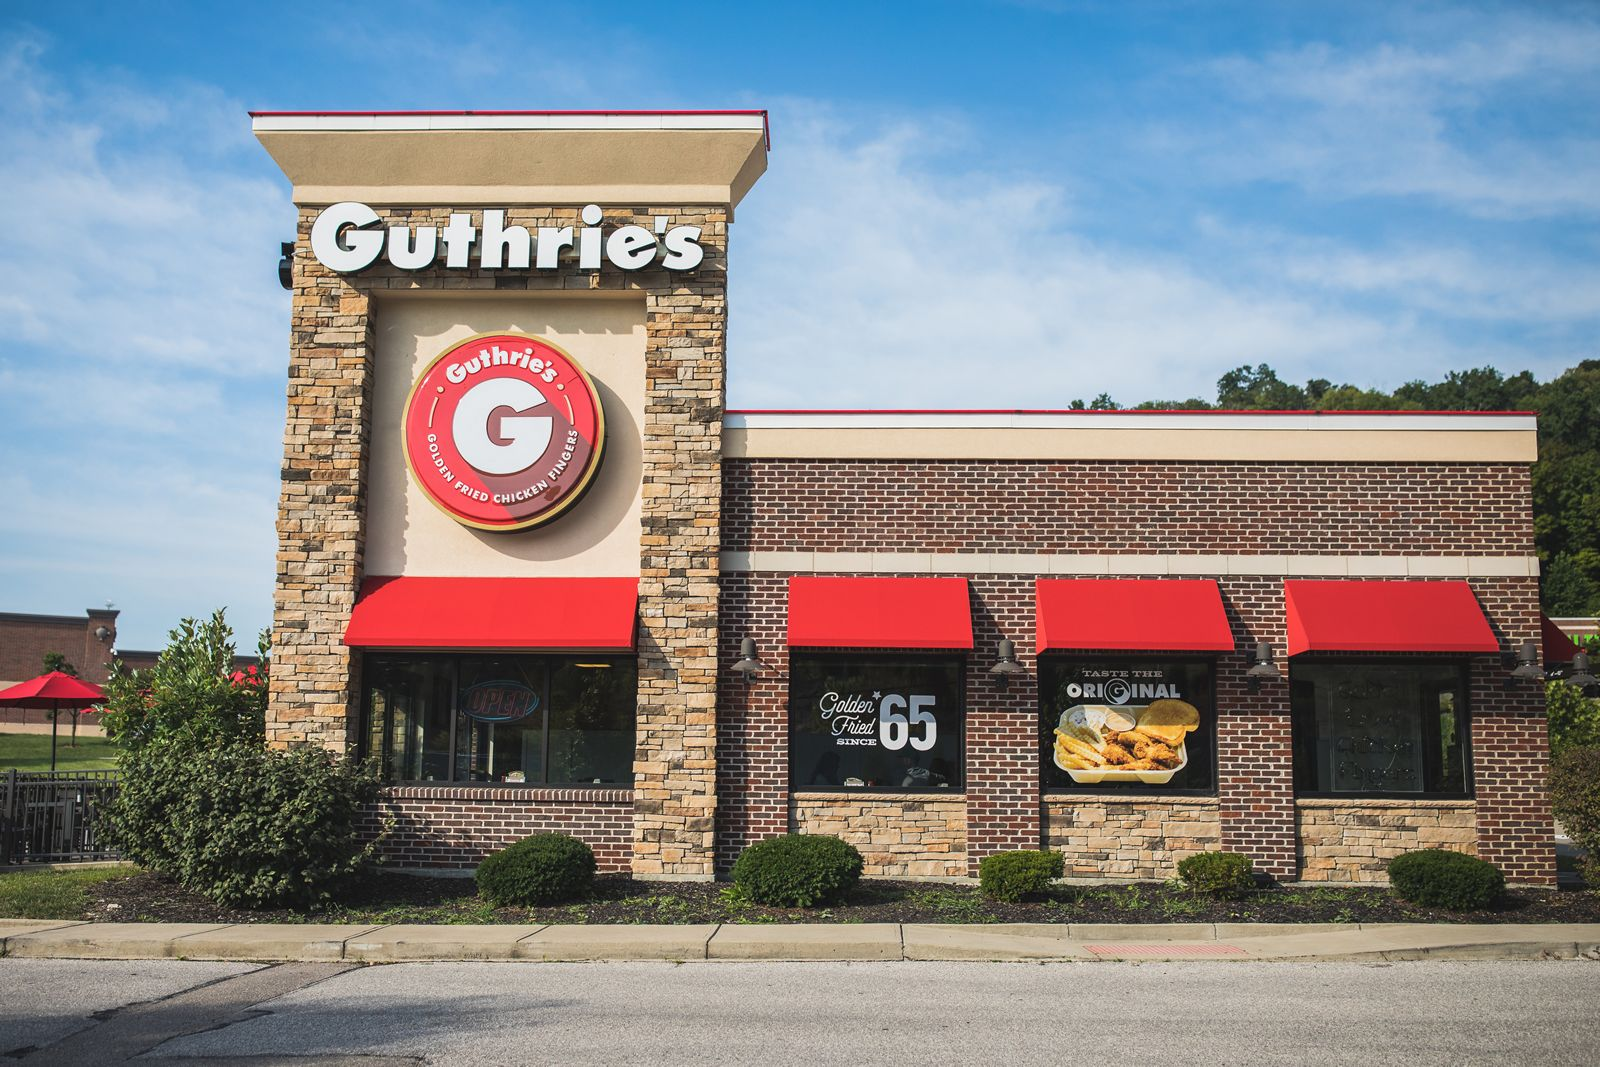 Guthrie's Launches Ambitious National Franchise Expansion Plan